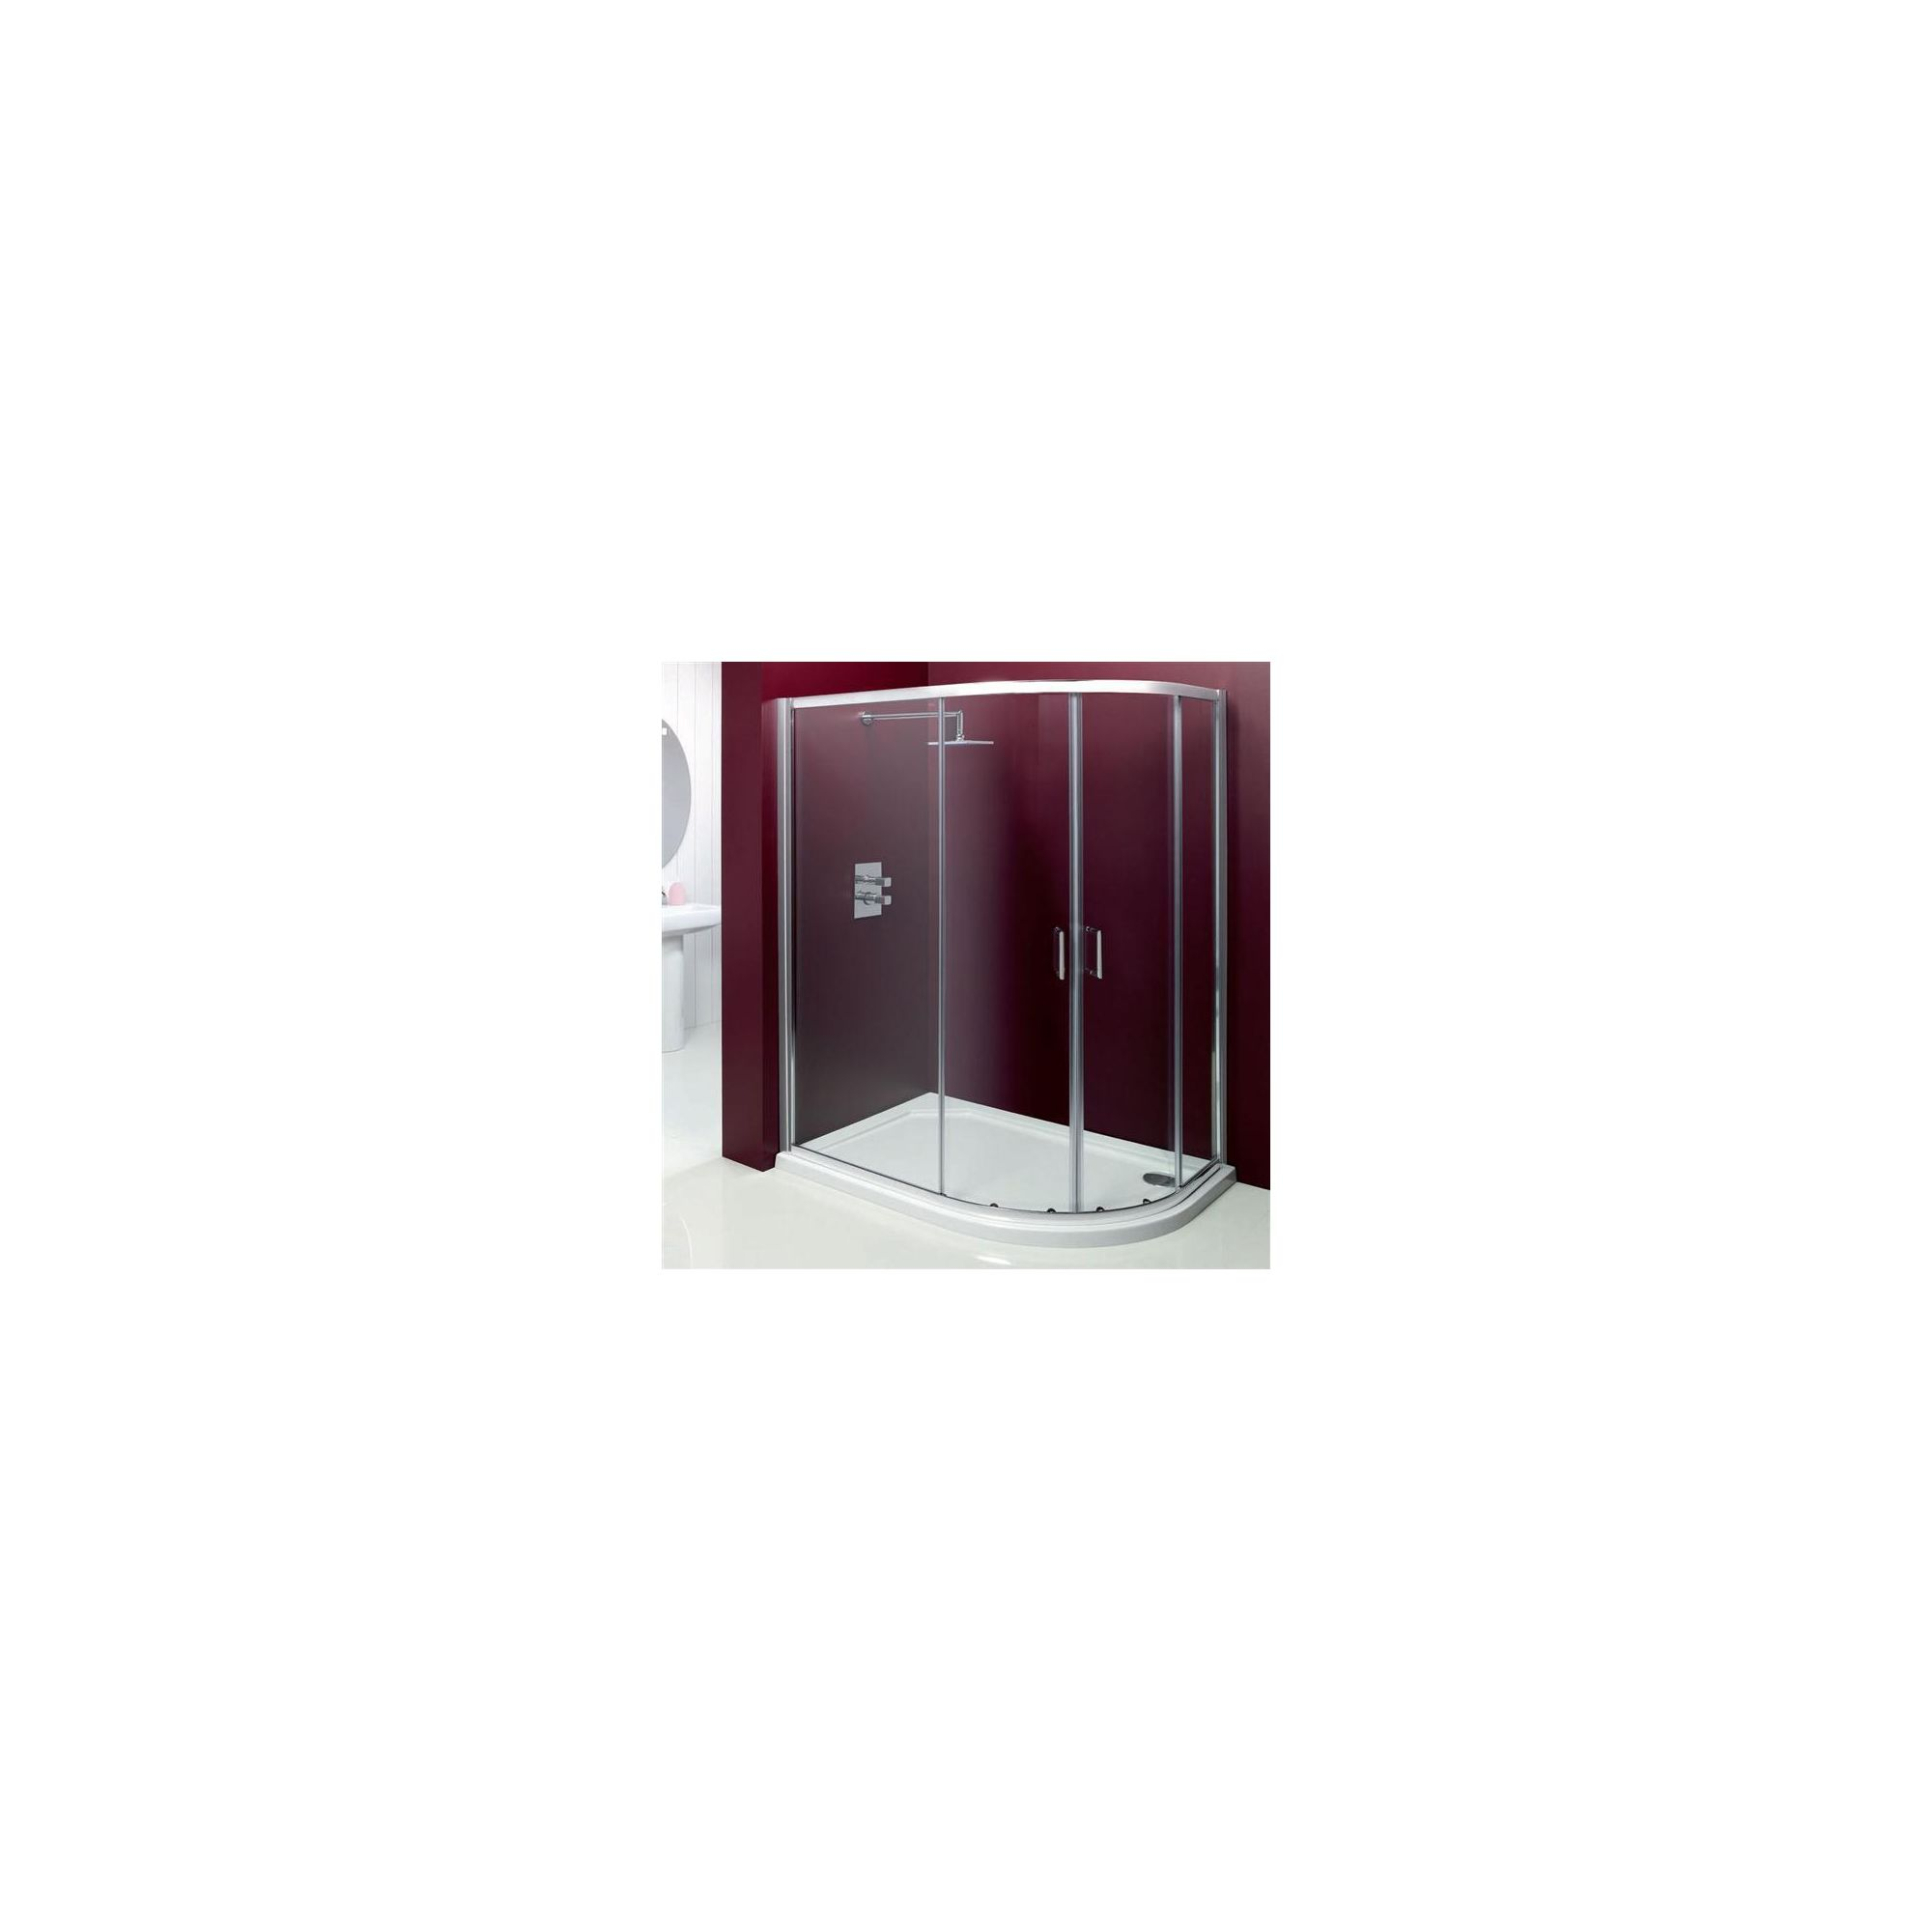 Merlyn Vivid Entree Offset Quadrant Shower Enclosure, 1200mm x 800mm, Right Handed, Low Profile Tray, 6mm Glass at Tesco Direct